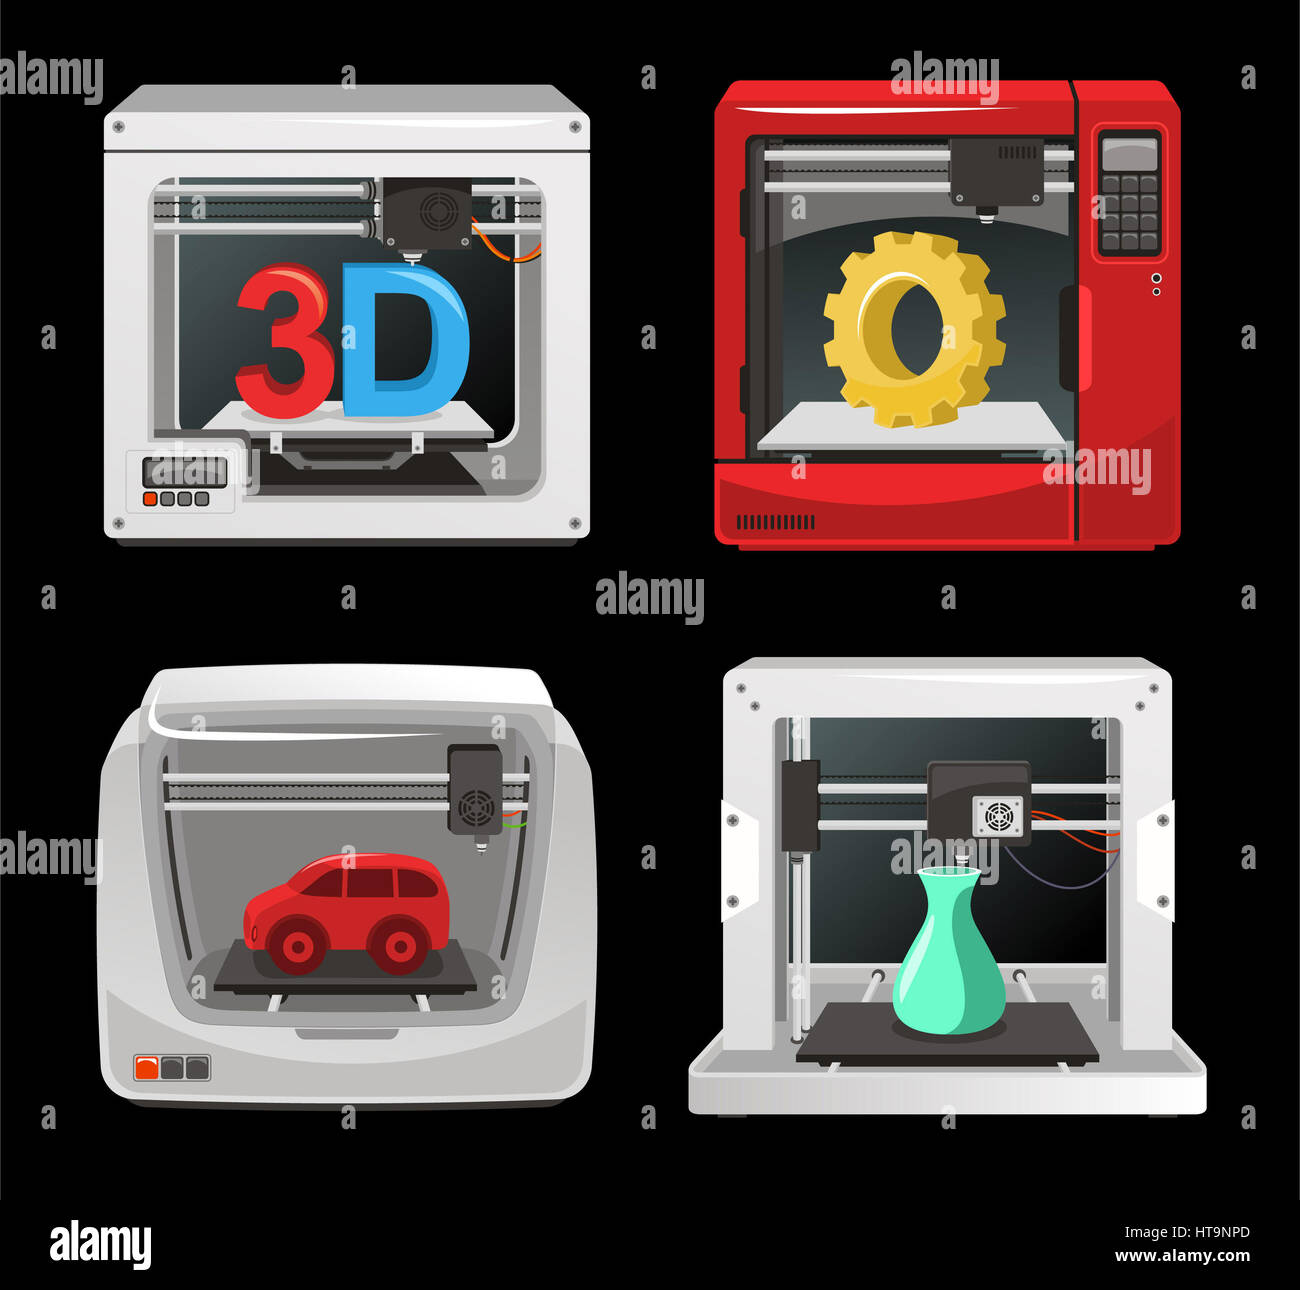 3D Printer Set, with computer software, computer three dimensional set. Digitally generated image vector illustration Stock Photo